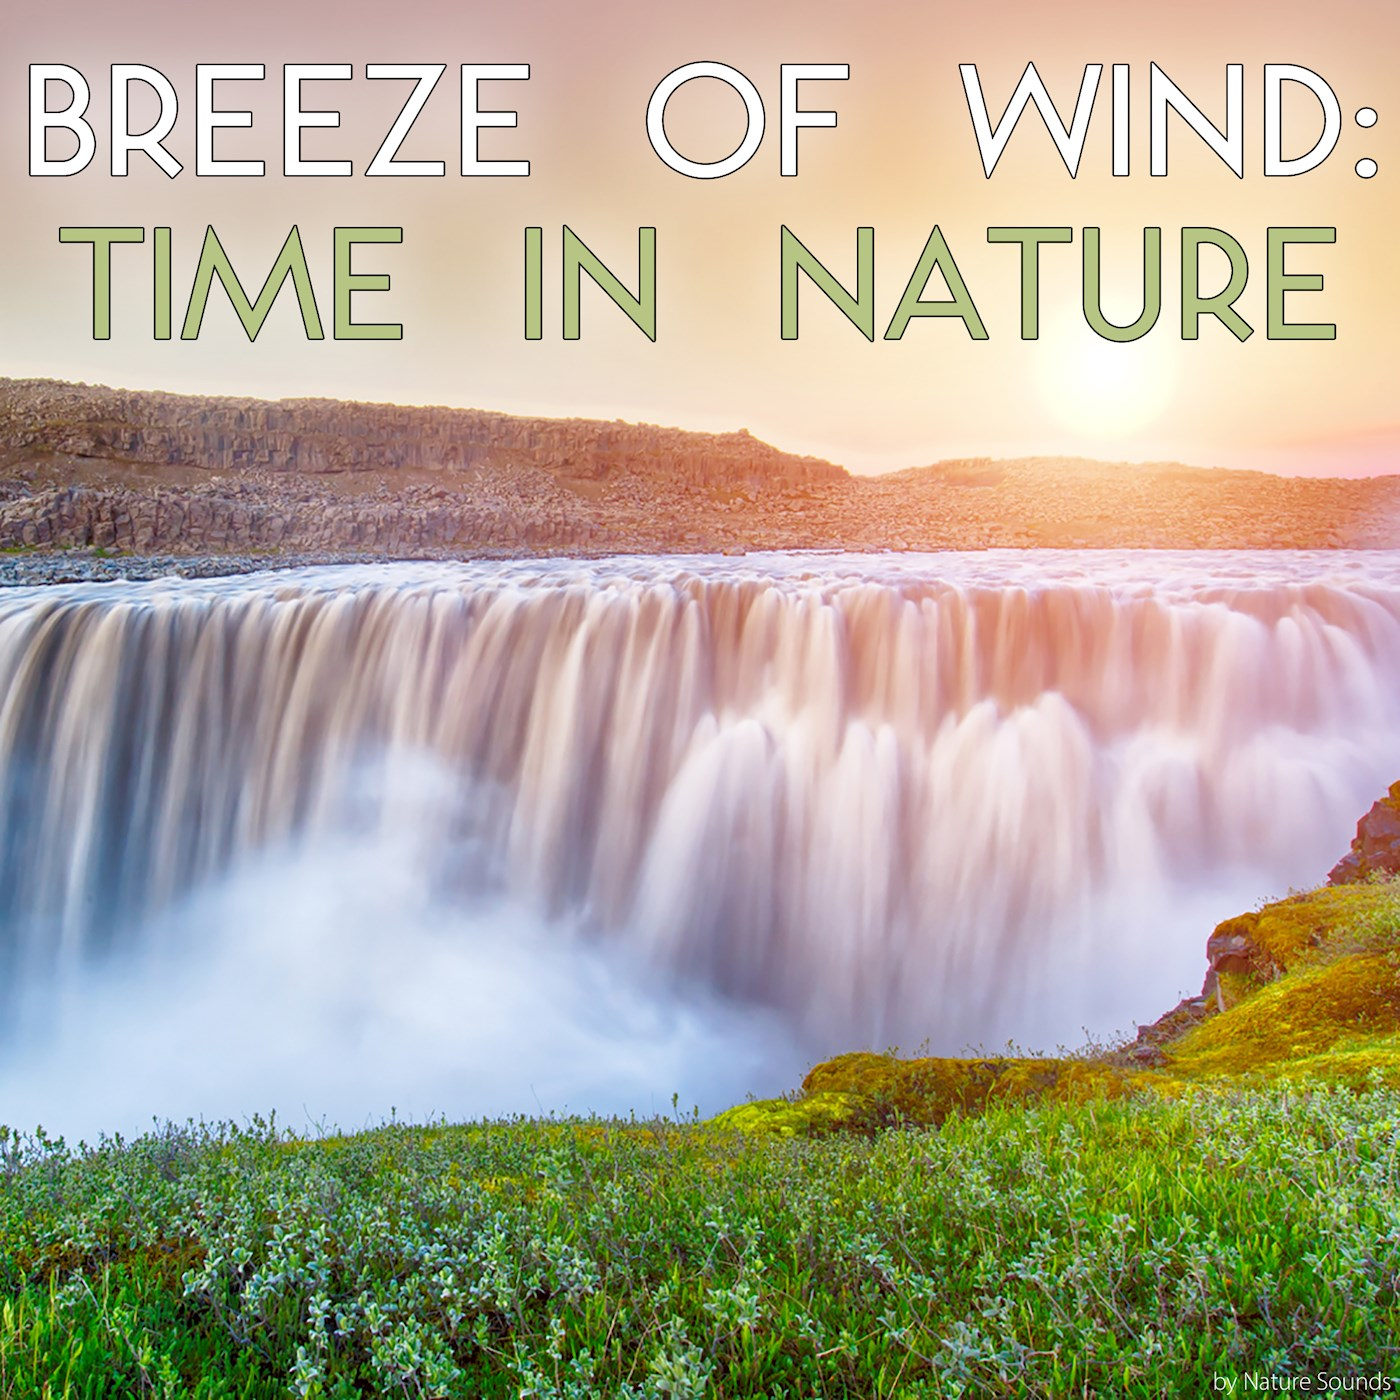 Breeze of Wind: Time in Nature